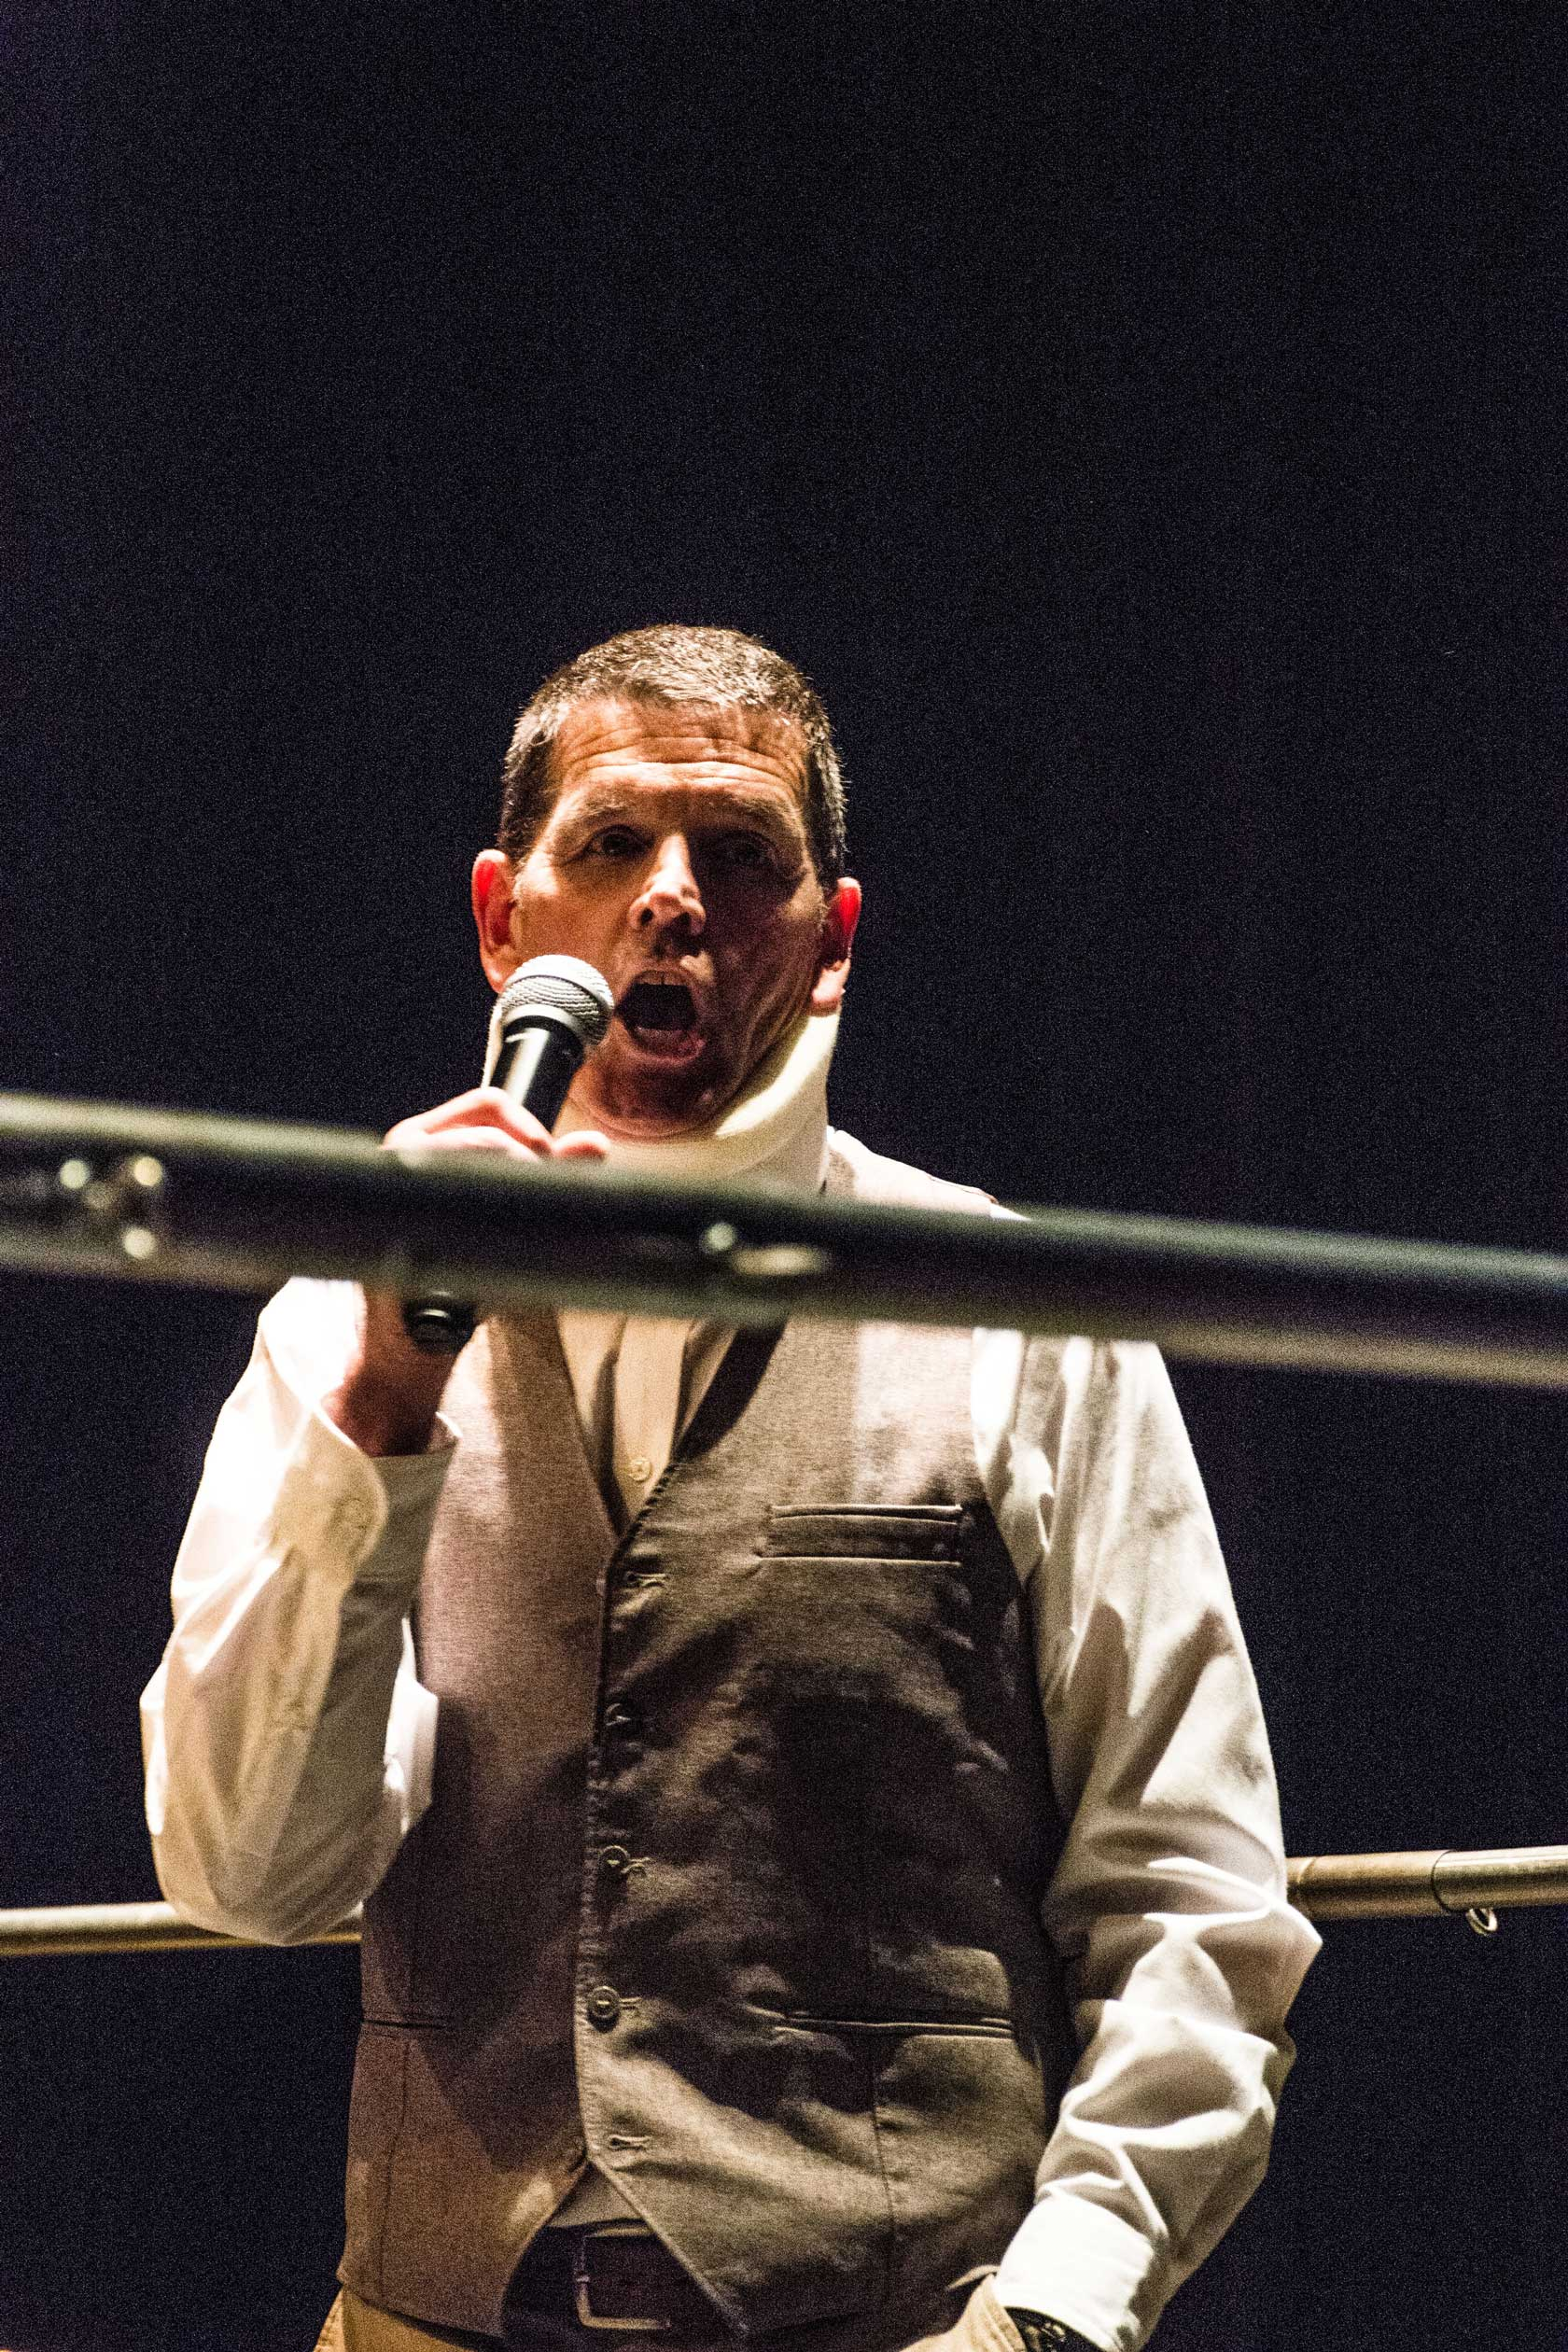 Paul Tyndall the Ring Announcer.